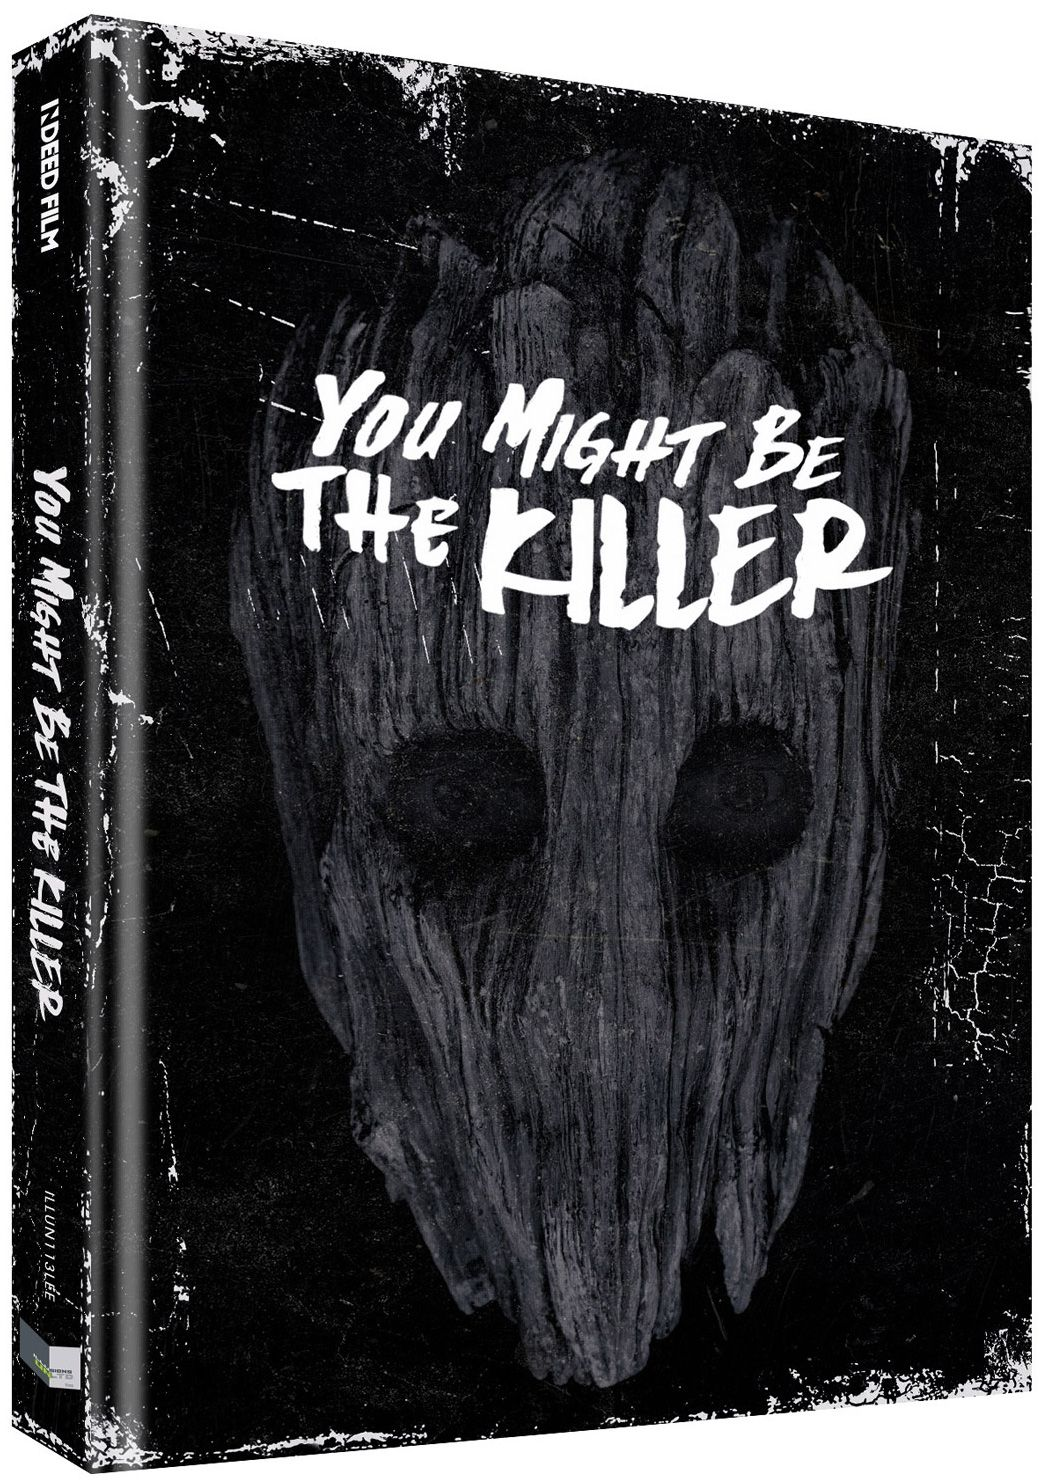 You Might Be the Killer (Lim. Uncut Mediabook - Cover E) (DVD + BLURAY)